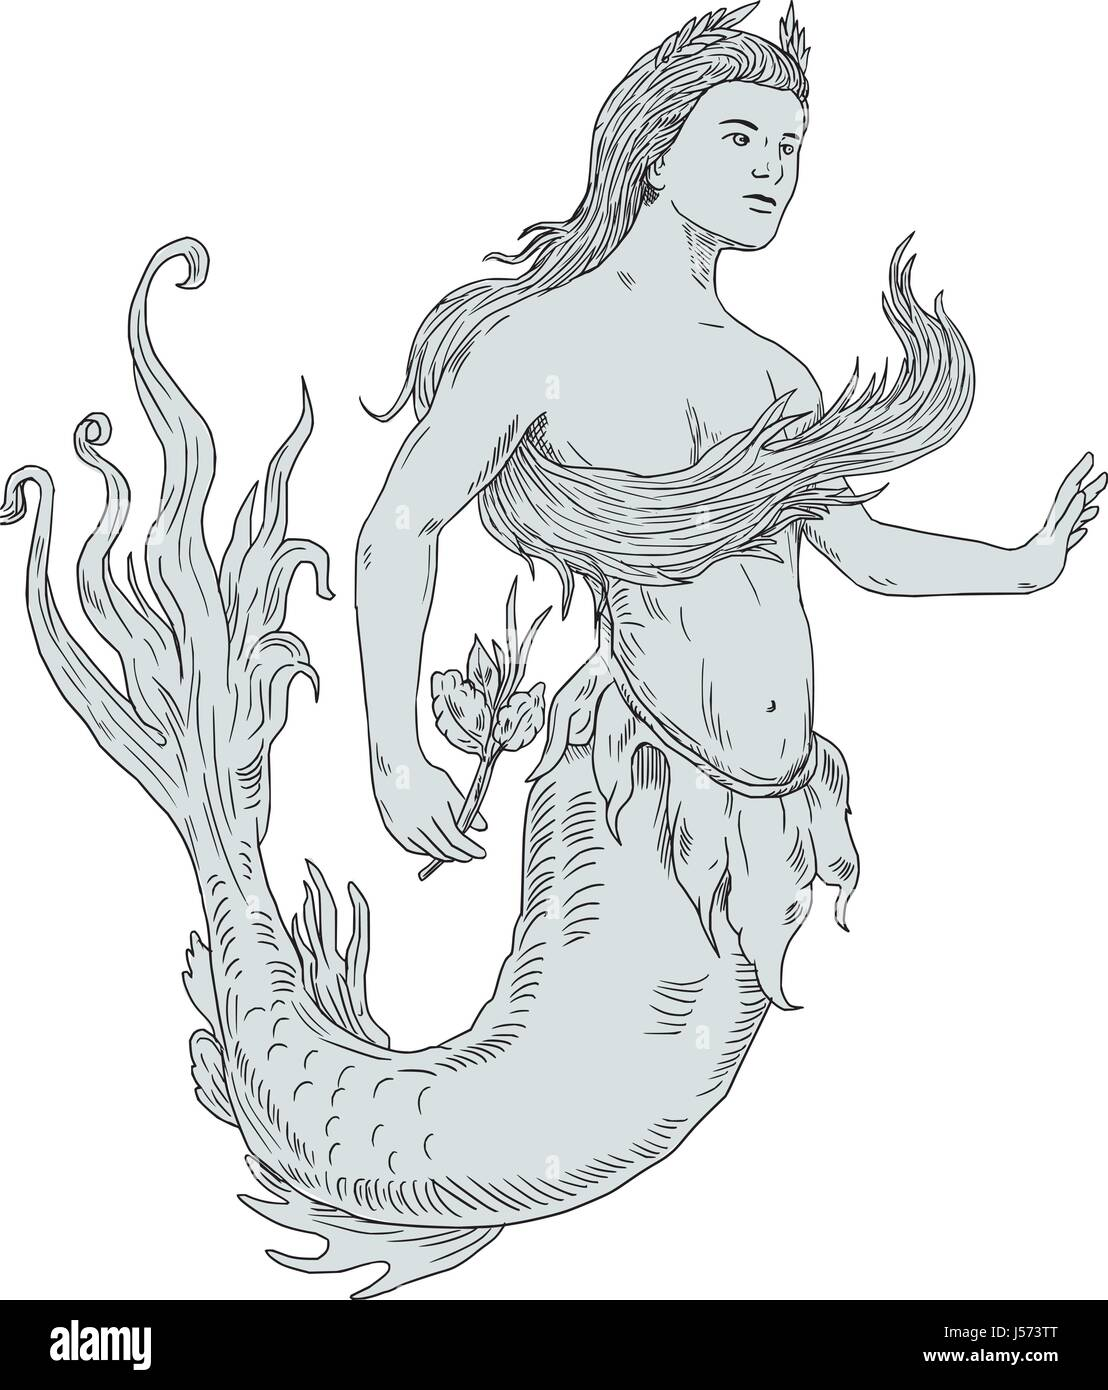 Drawing Sketch Style Illustration Of A Vintage Mermaid Holding